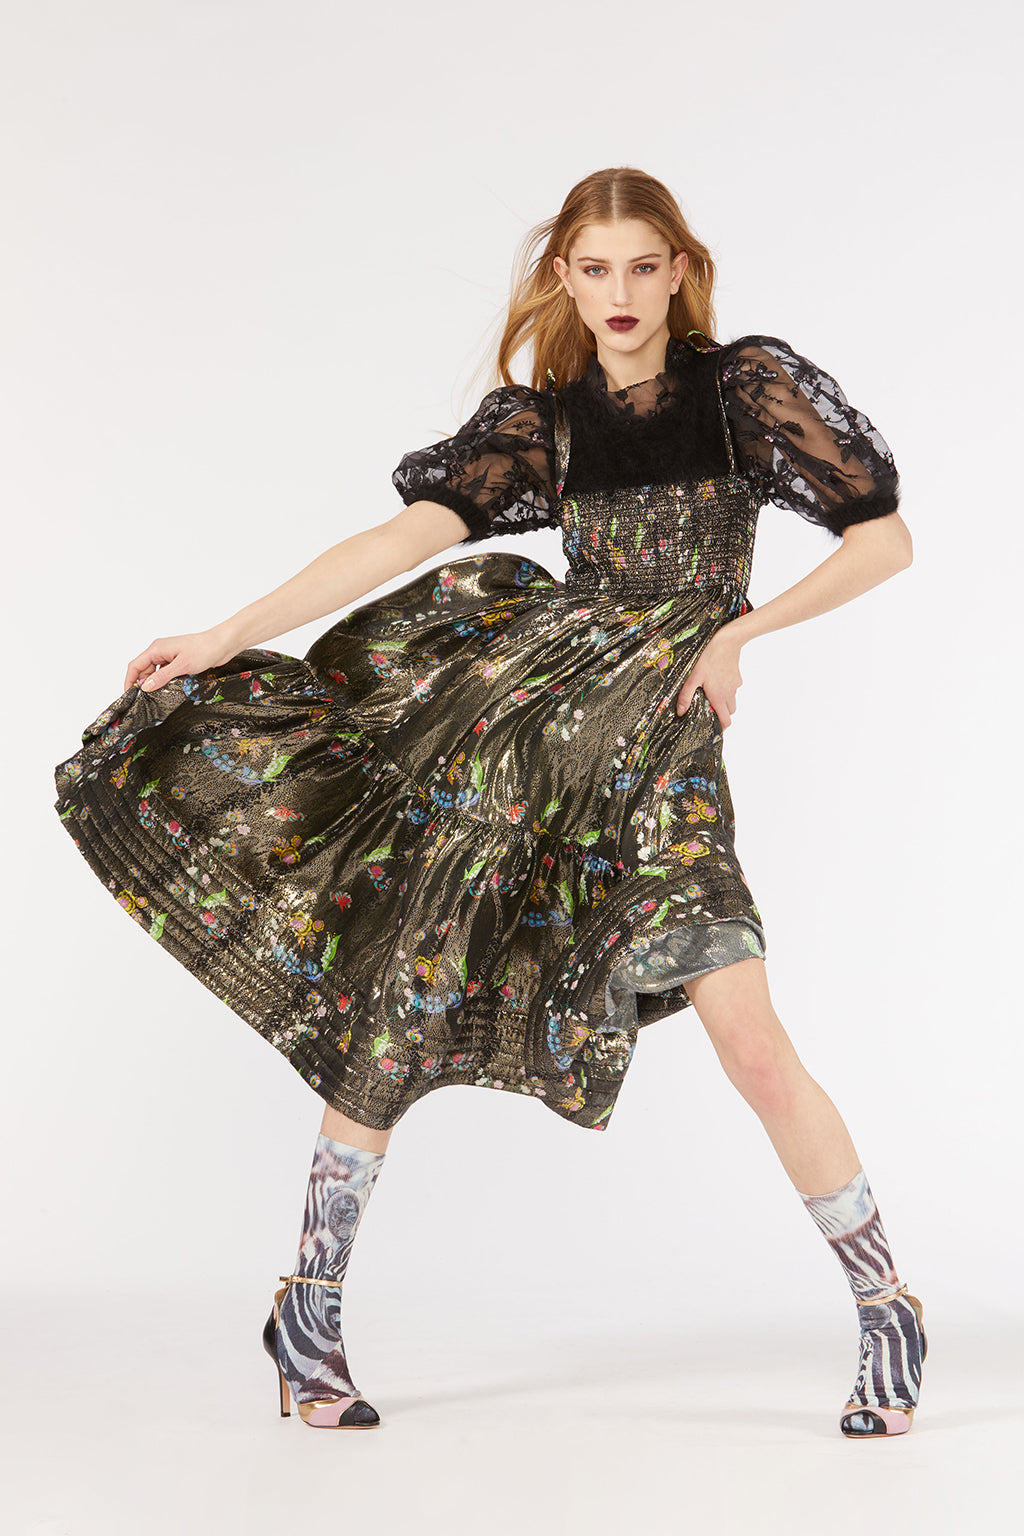 Cynthia Rowley Fall 2018 look 34 featuring a metallic floral tiered dress with smocking across chest and black embroidered tulle puff sleeves.